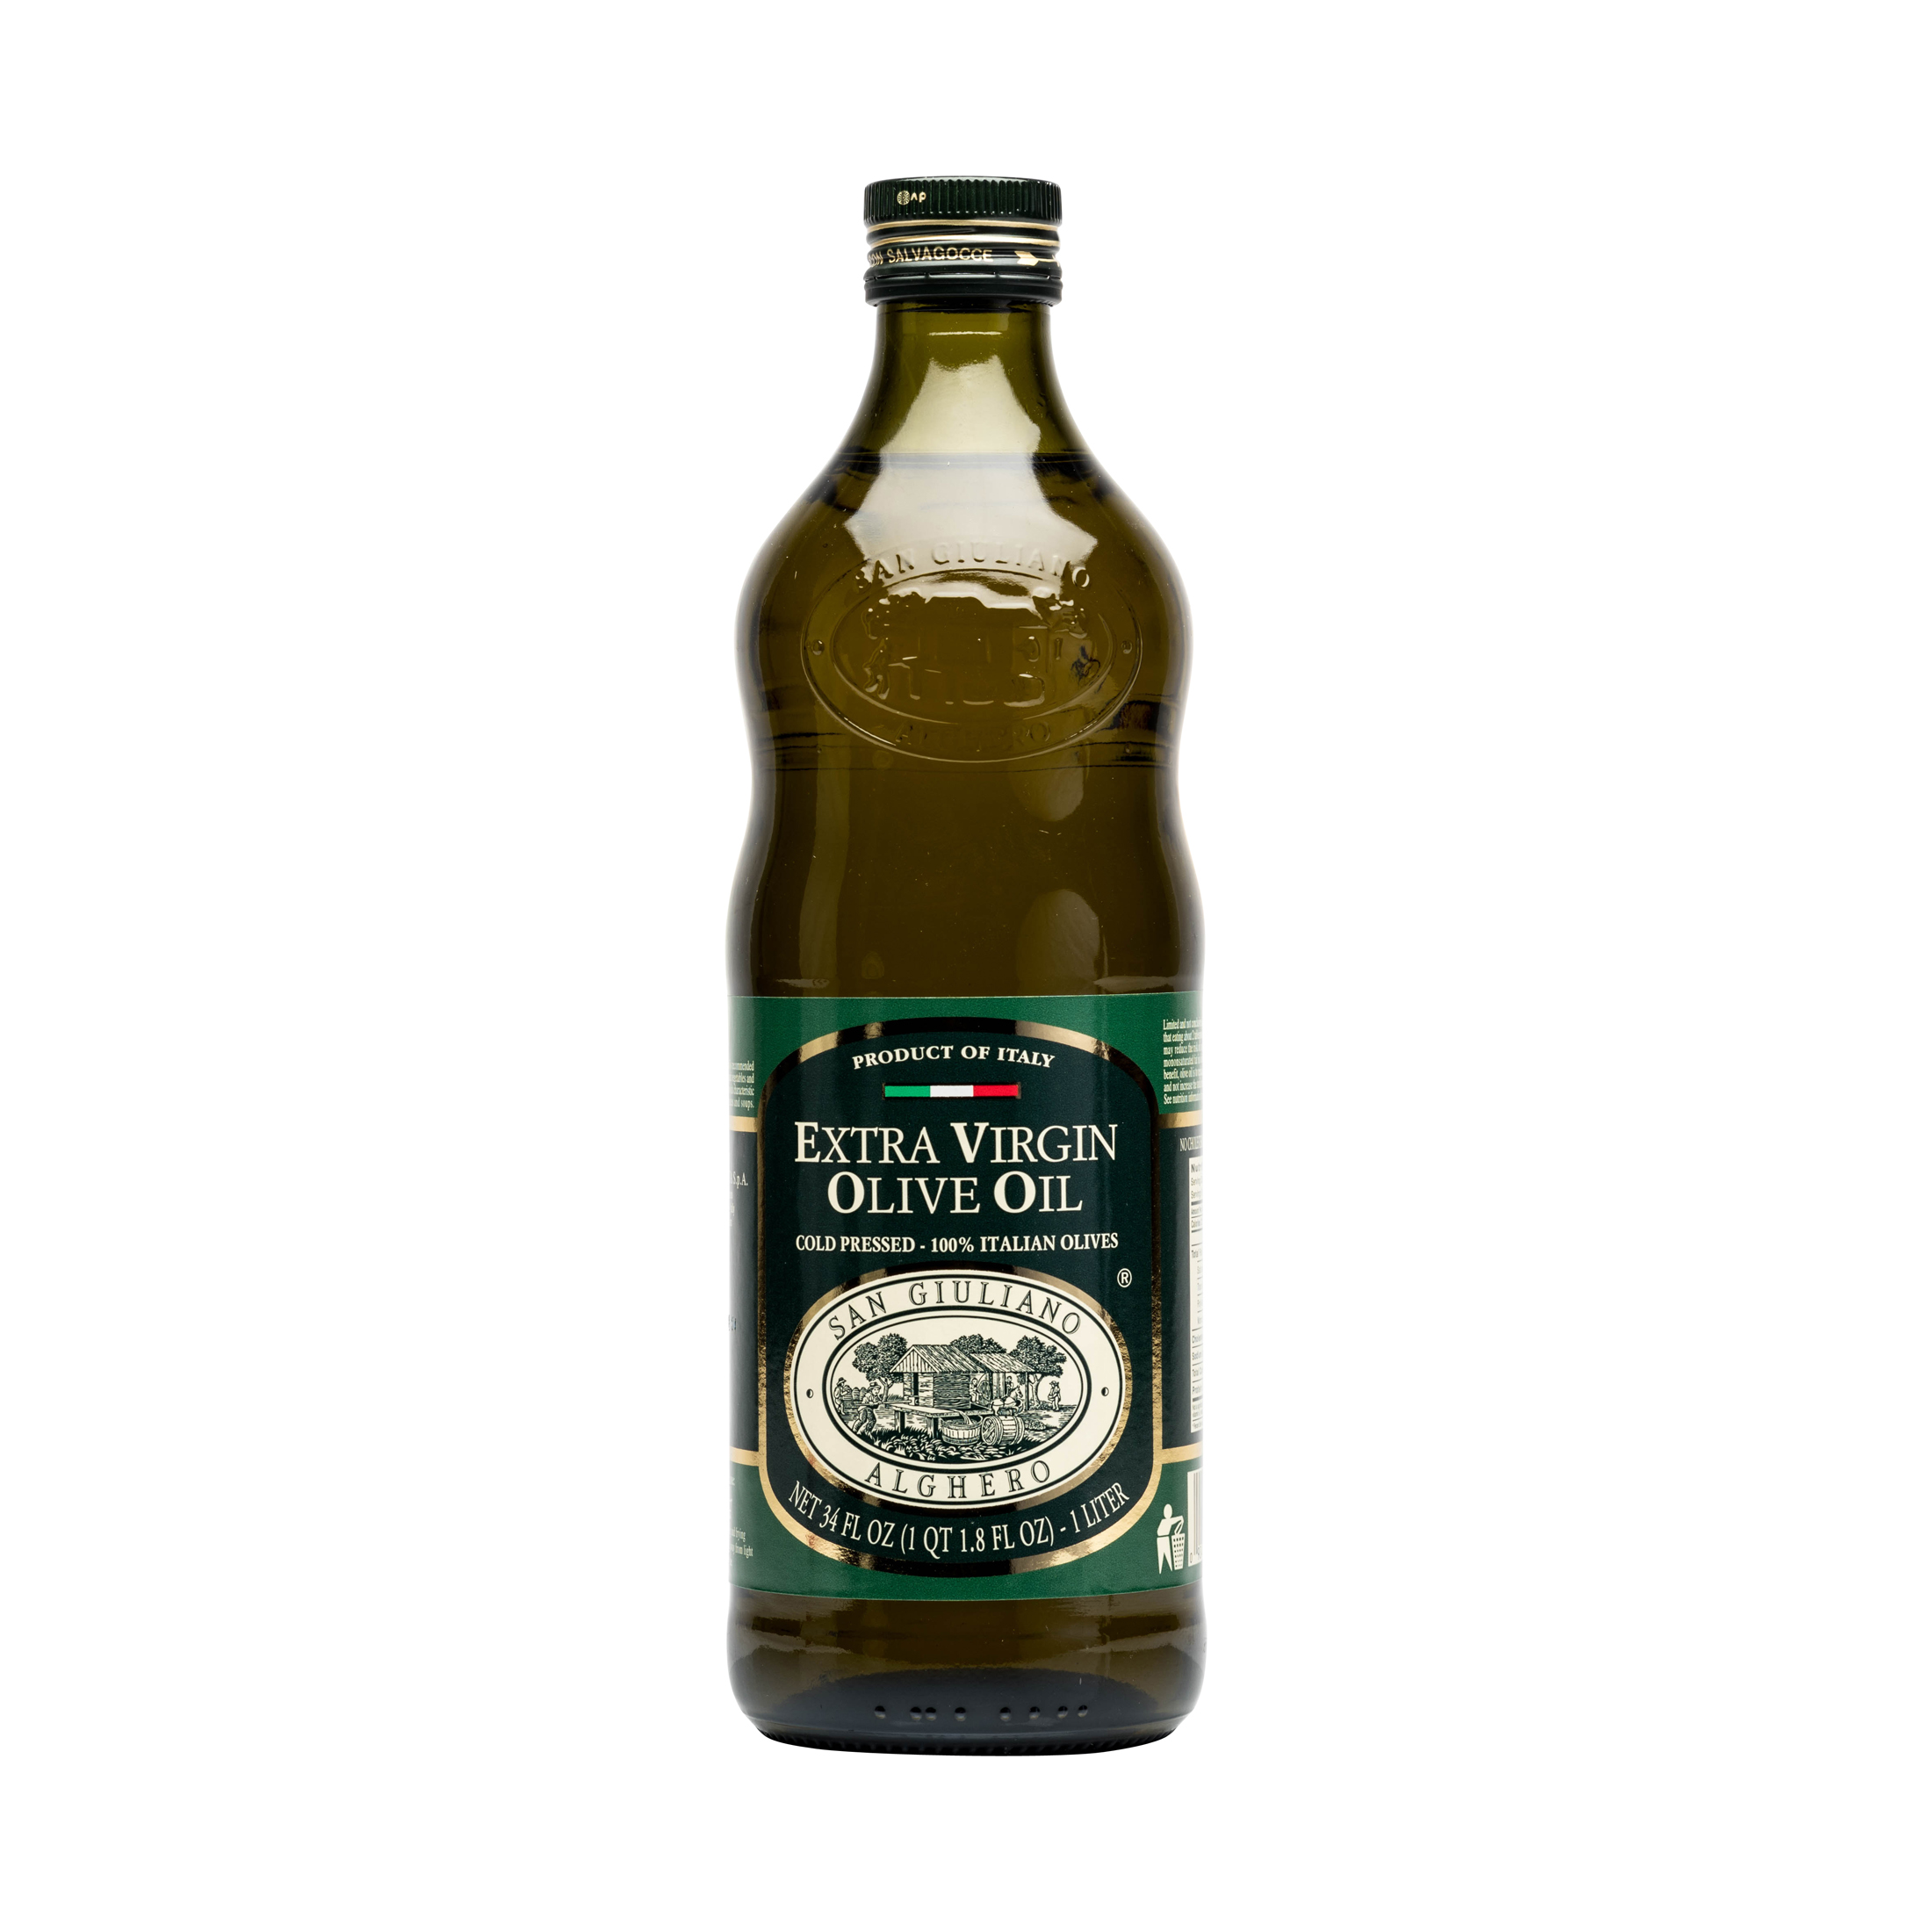 SAN GIULIANO EXTRA VIRGIN OLIVE OIL